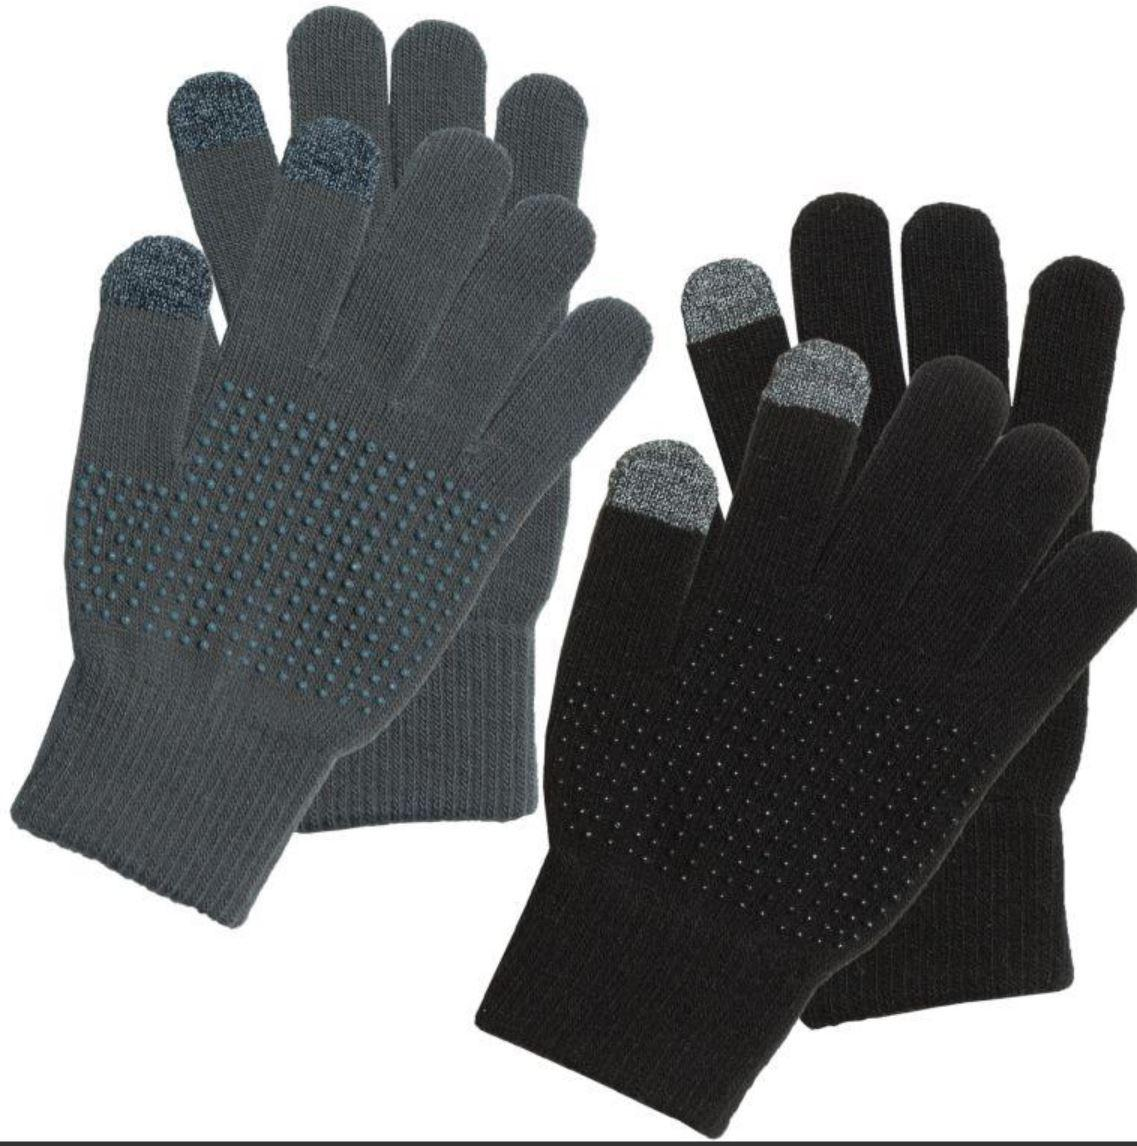 Fingerless Gloves Copy